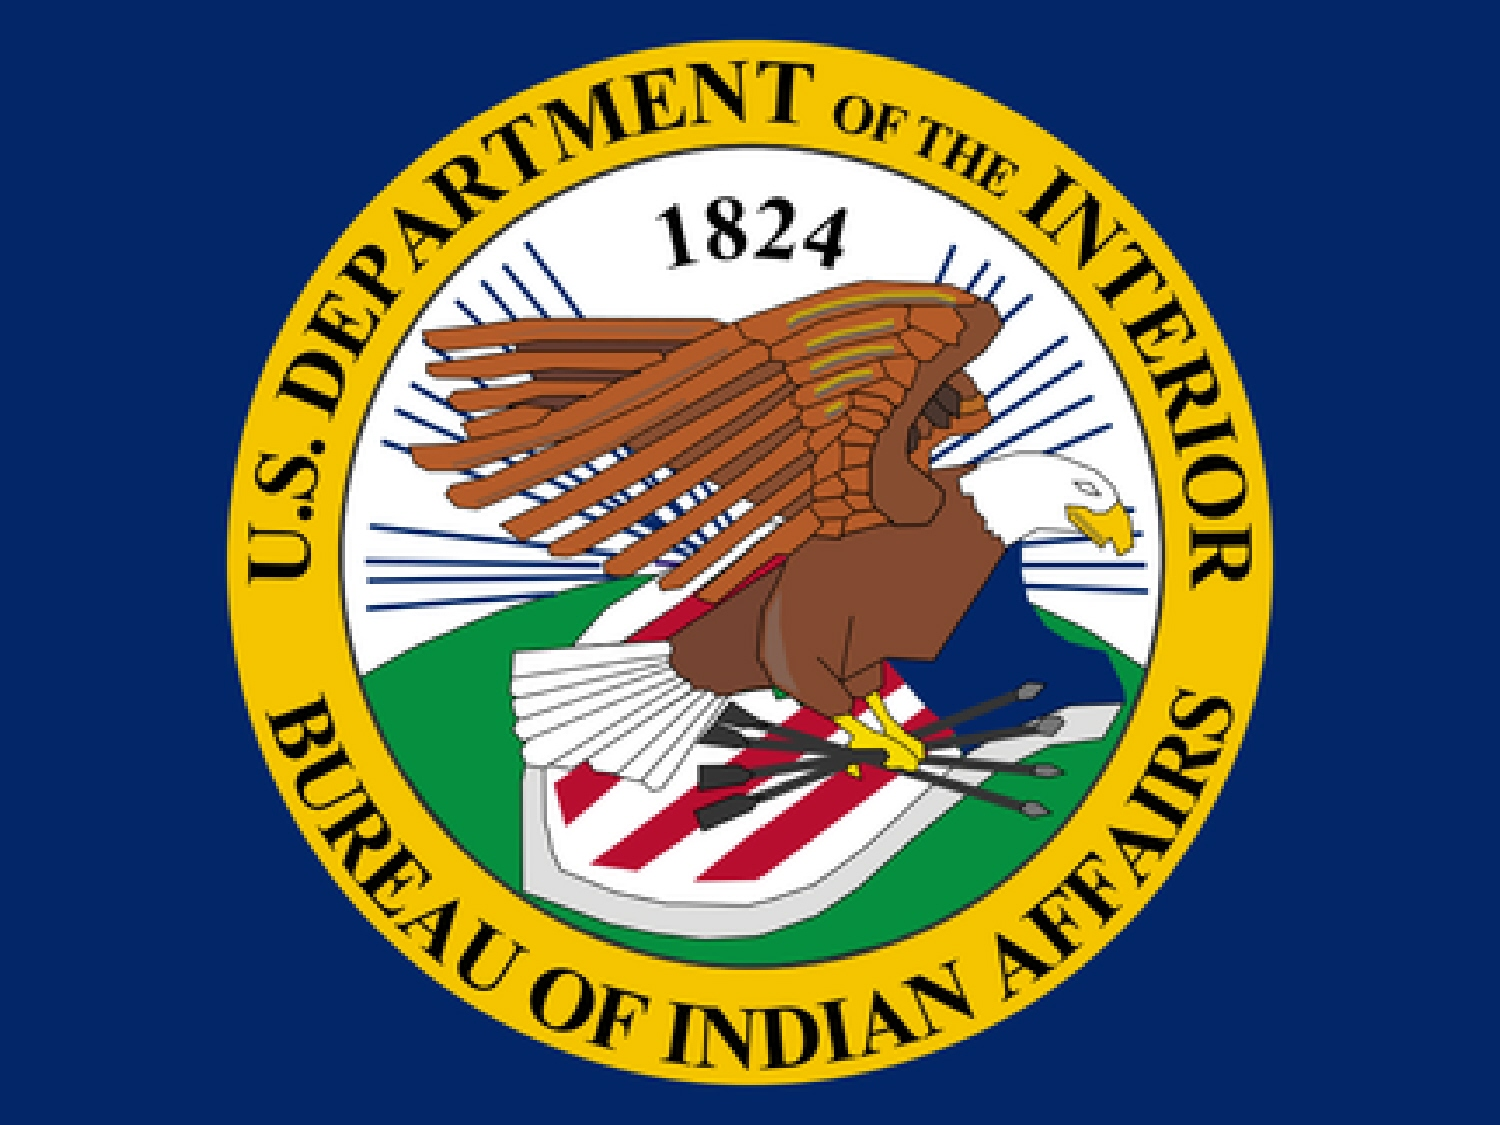 Socialism personified pearlsofprofundity - United states department of the interior bureau of indian affairs ...